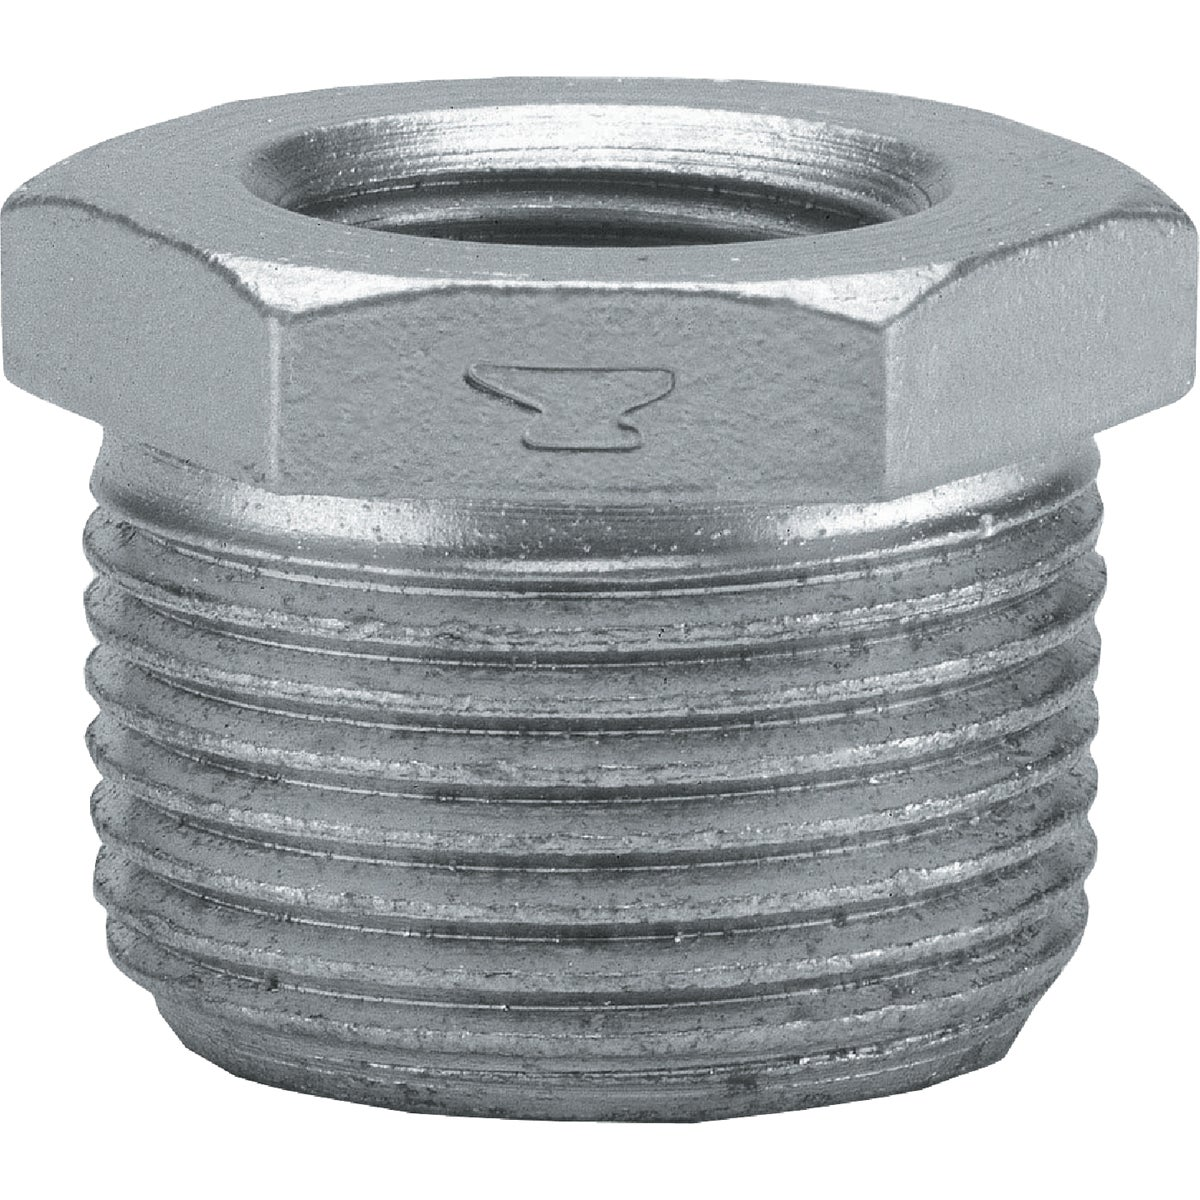 1X3/4 GALV BUSHING - 8700130852 by Anvil International